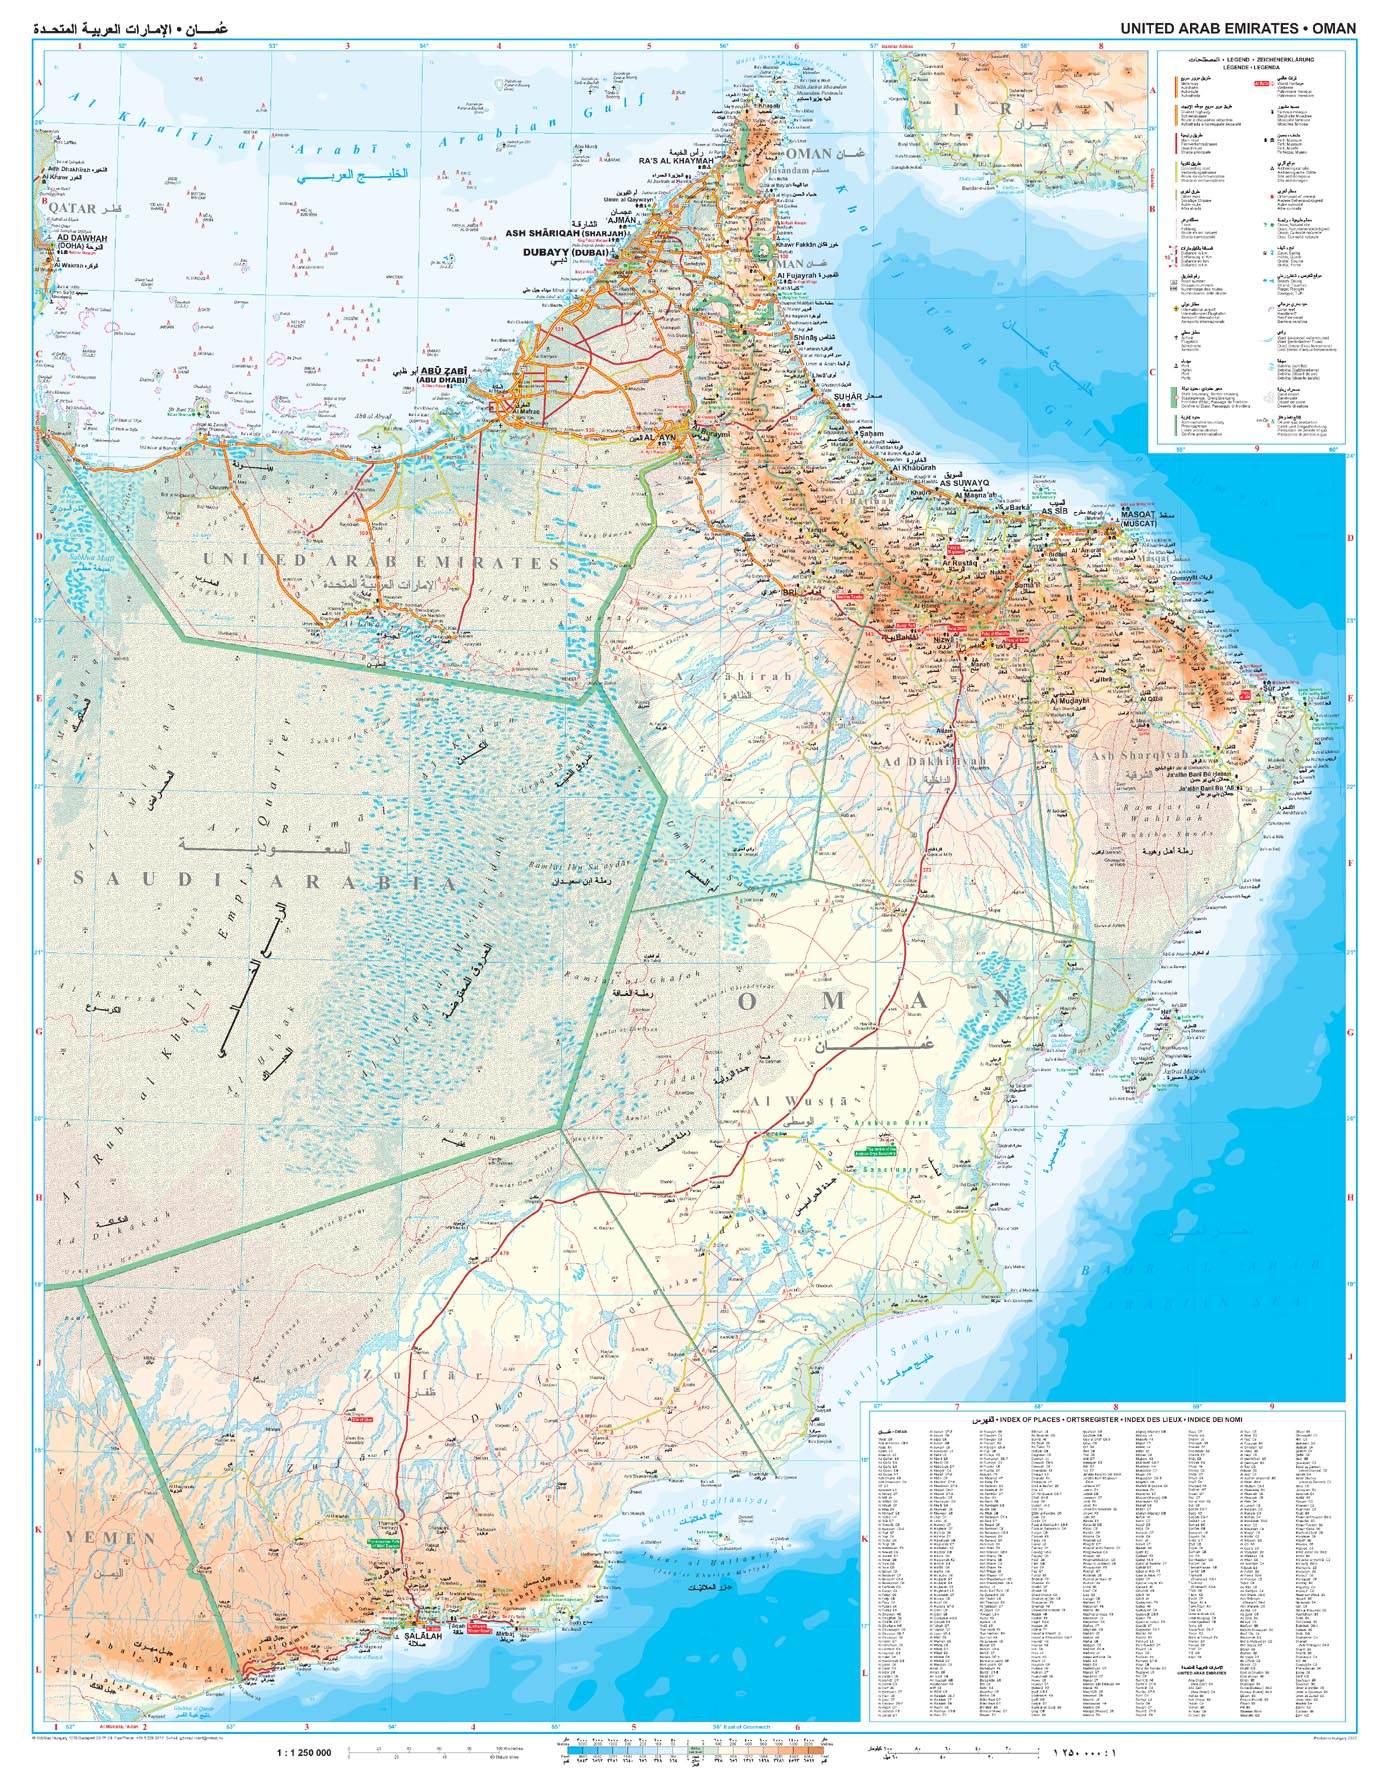 United Arab Emirates And Oman Map As A Poster 73 X 93cm